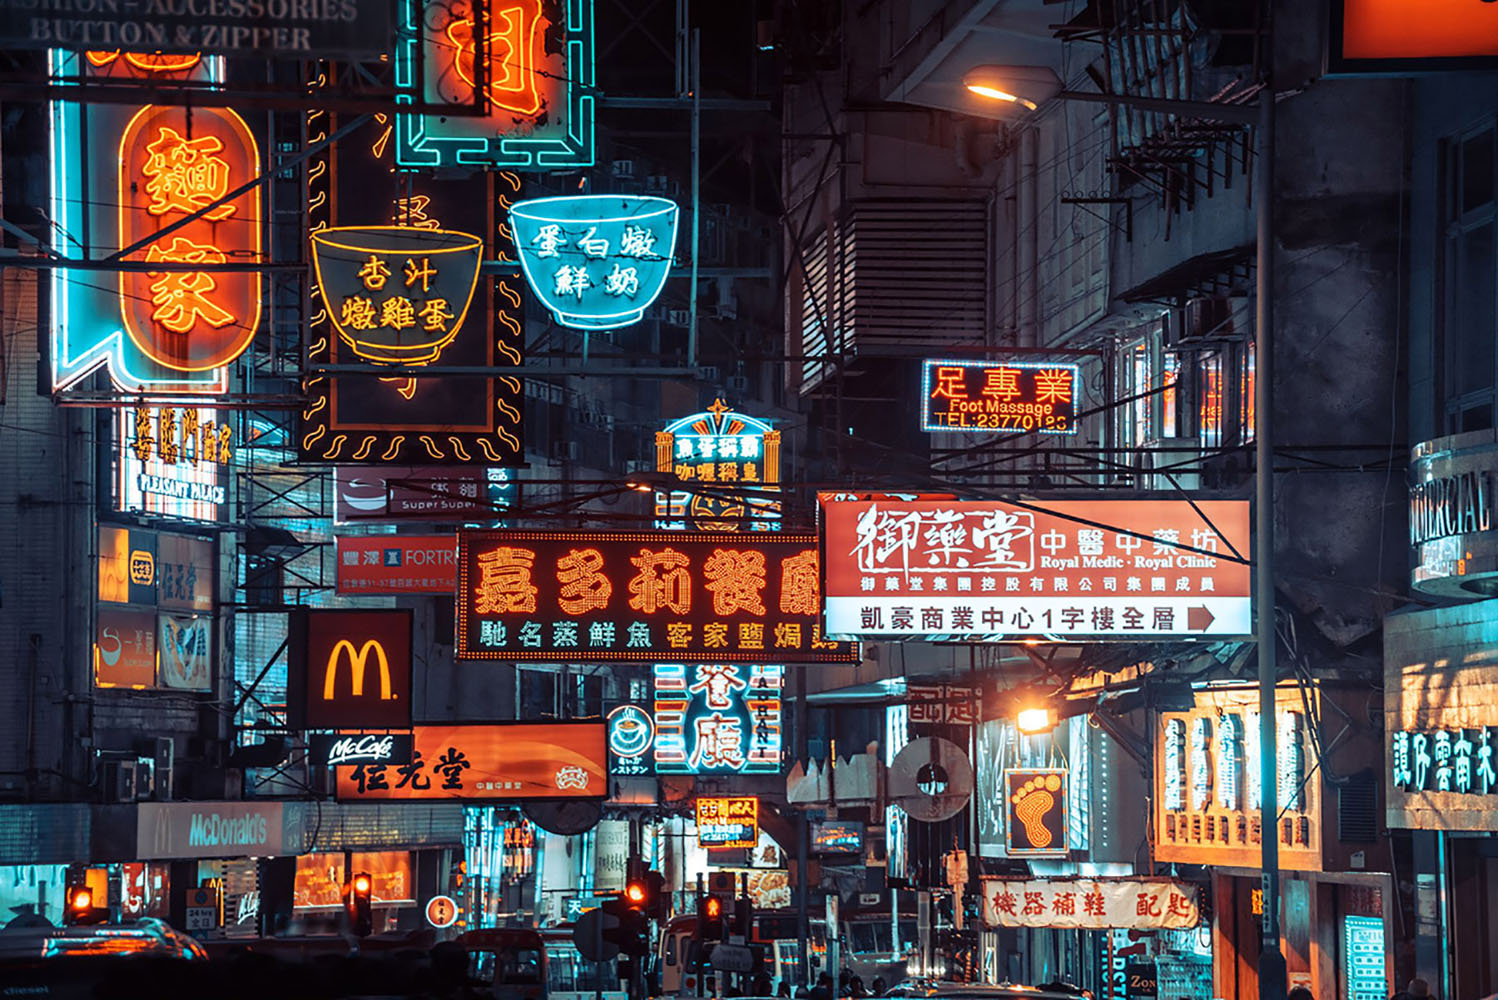 Colorful neon signs light up a street in Hong kong